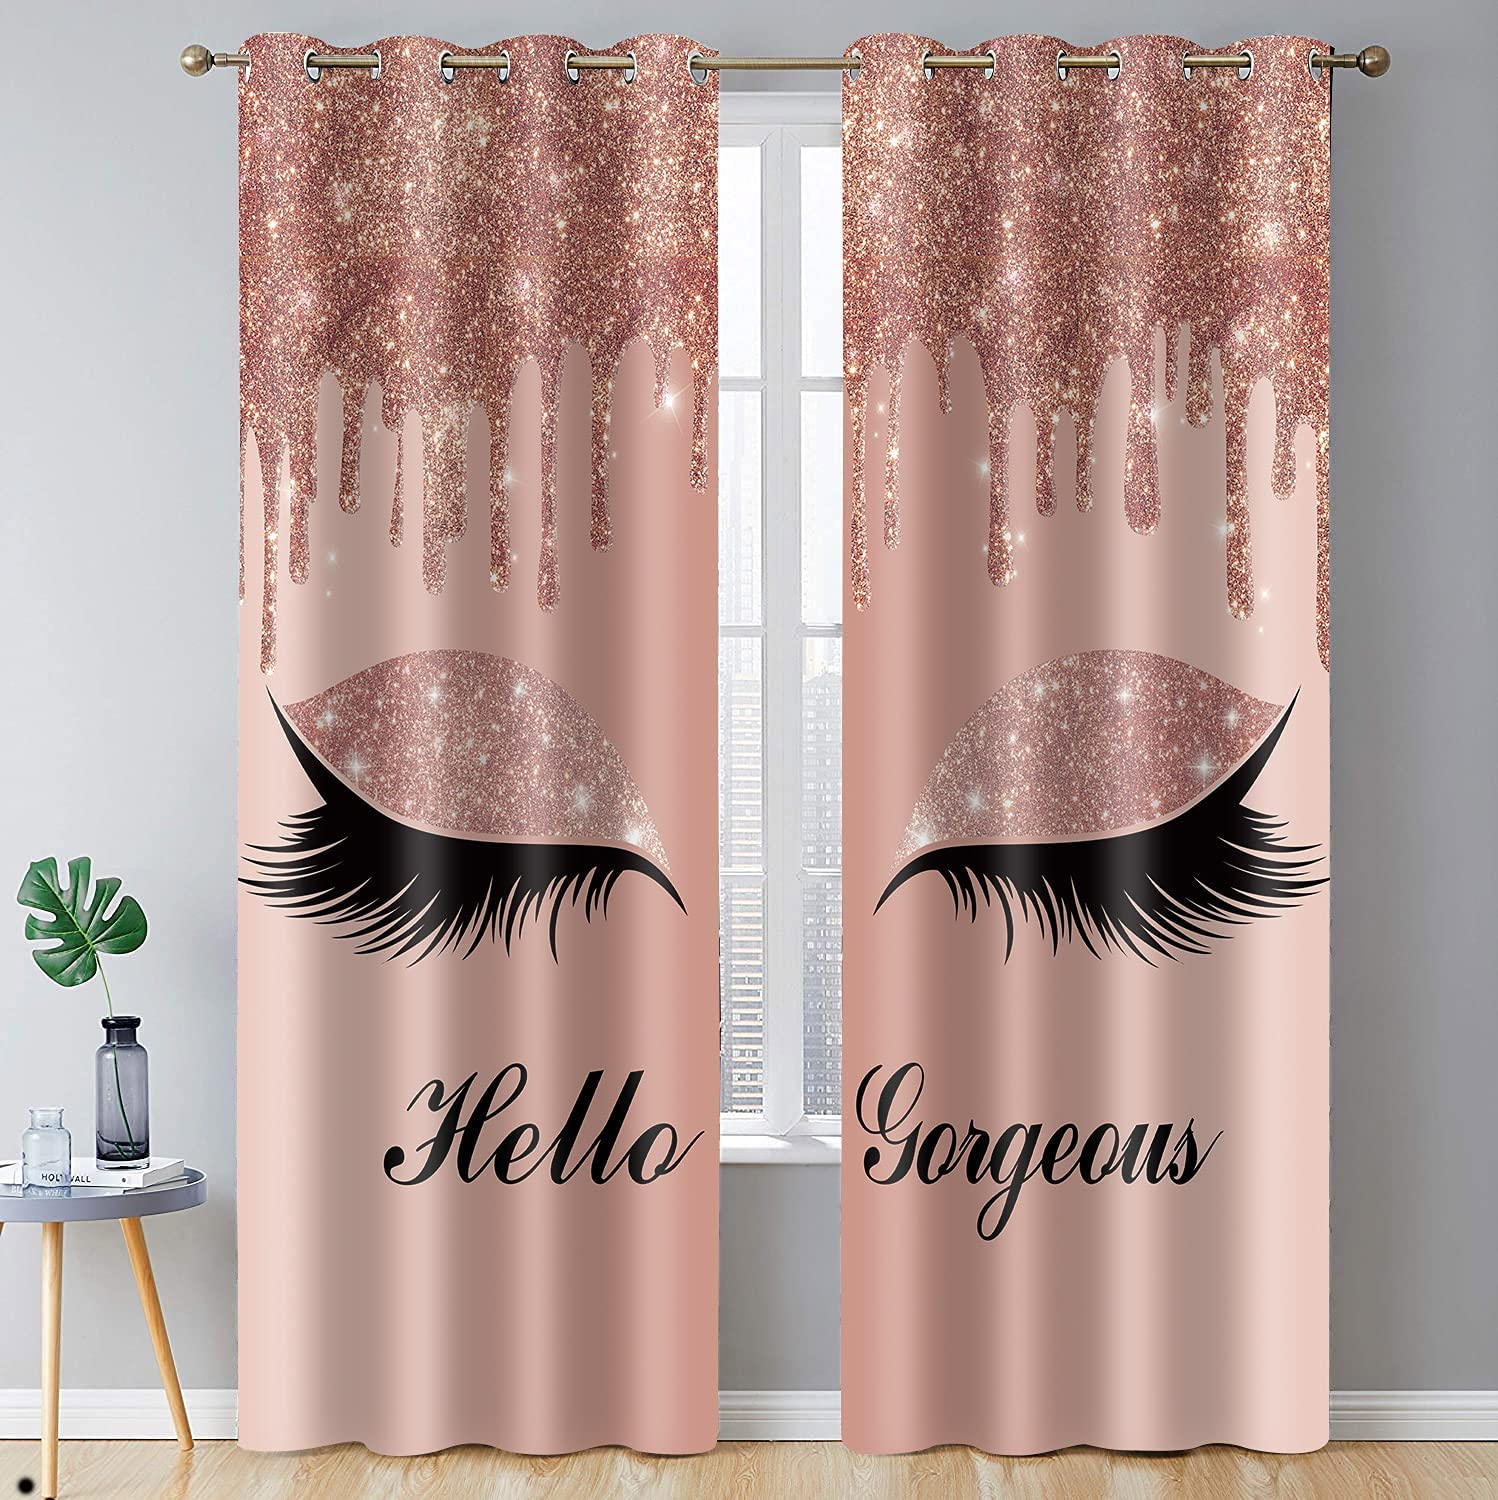 BSPPTI Hello Gorgeous Unicorn Eyelash Print Curtain, Rose Gold Drips (No Glitter No Sequin) Room Darkening Thermal Insulated Blackout Window Drapes for Living, Bedroom, 42